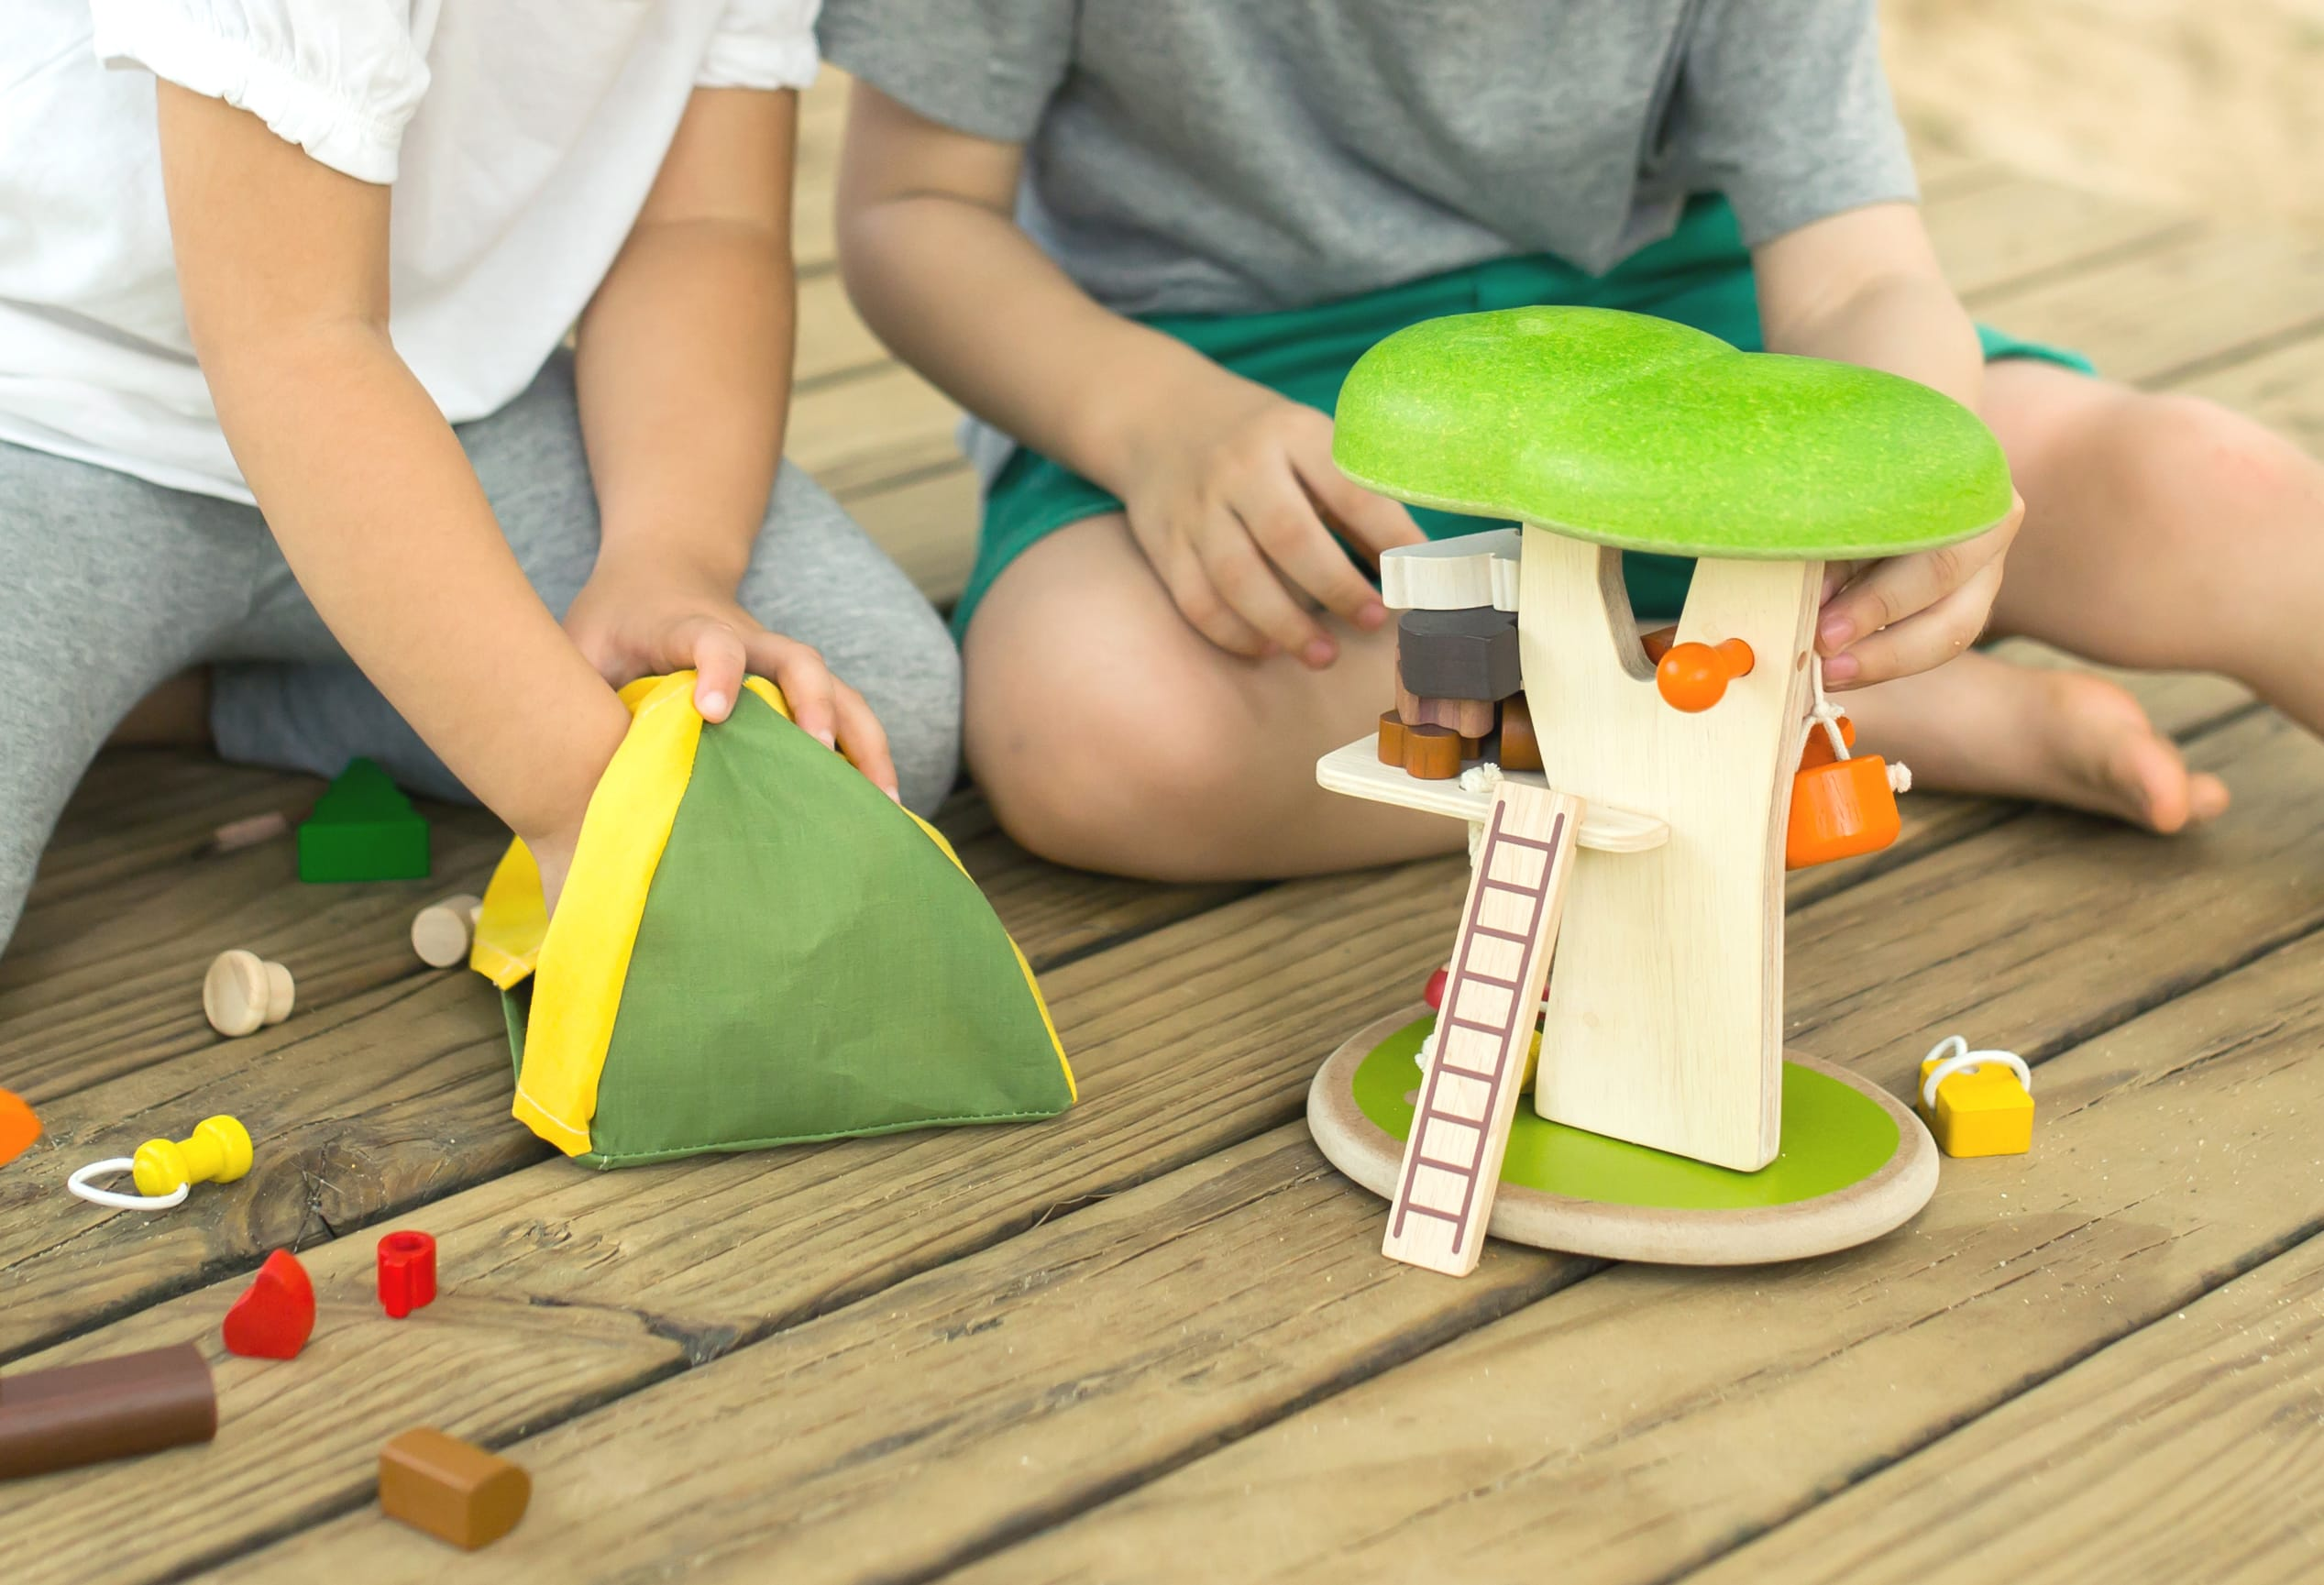 6626_PlanToys_TREE_HOUSE_Pretend_Play_Imagination_Coordination_Language_and_Communications_Social_Fine_Motor_3yrs_Wooden_toys_Education_toys_Safety_Toys_Non-toxic_3.jpg